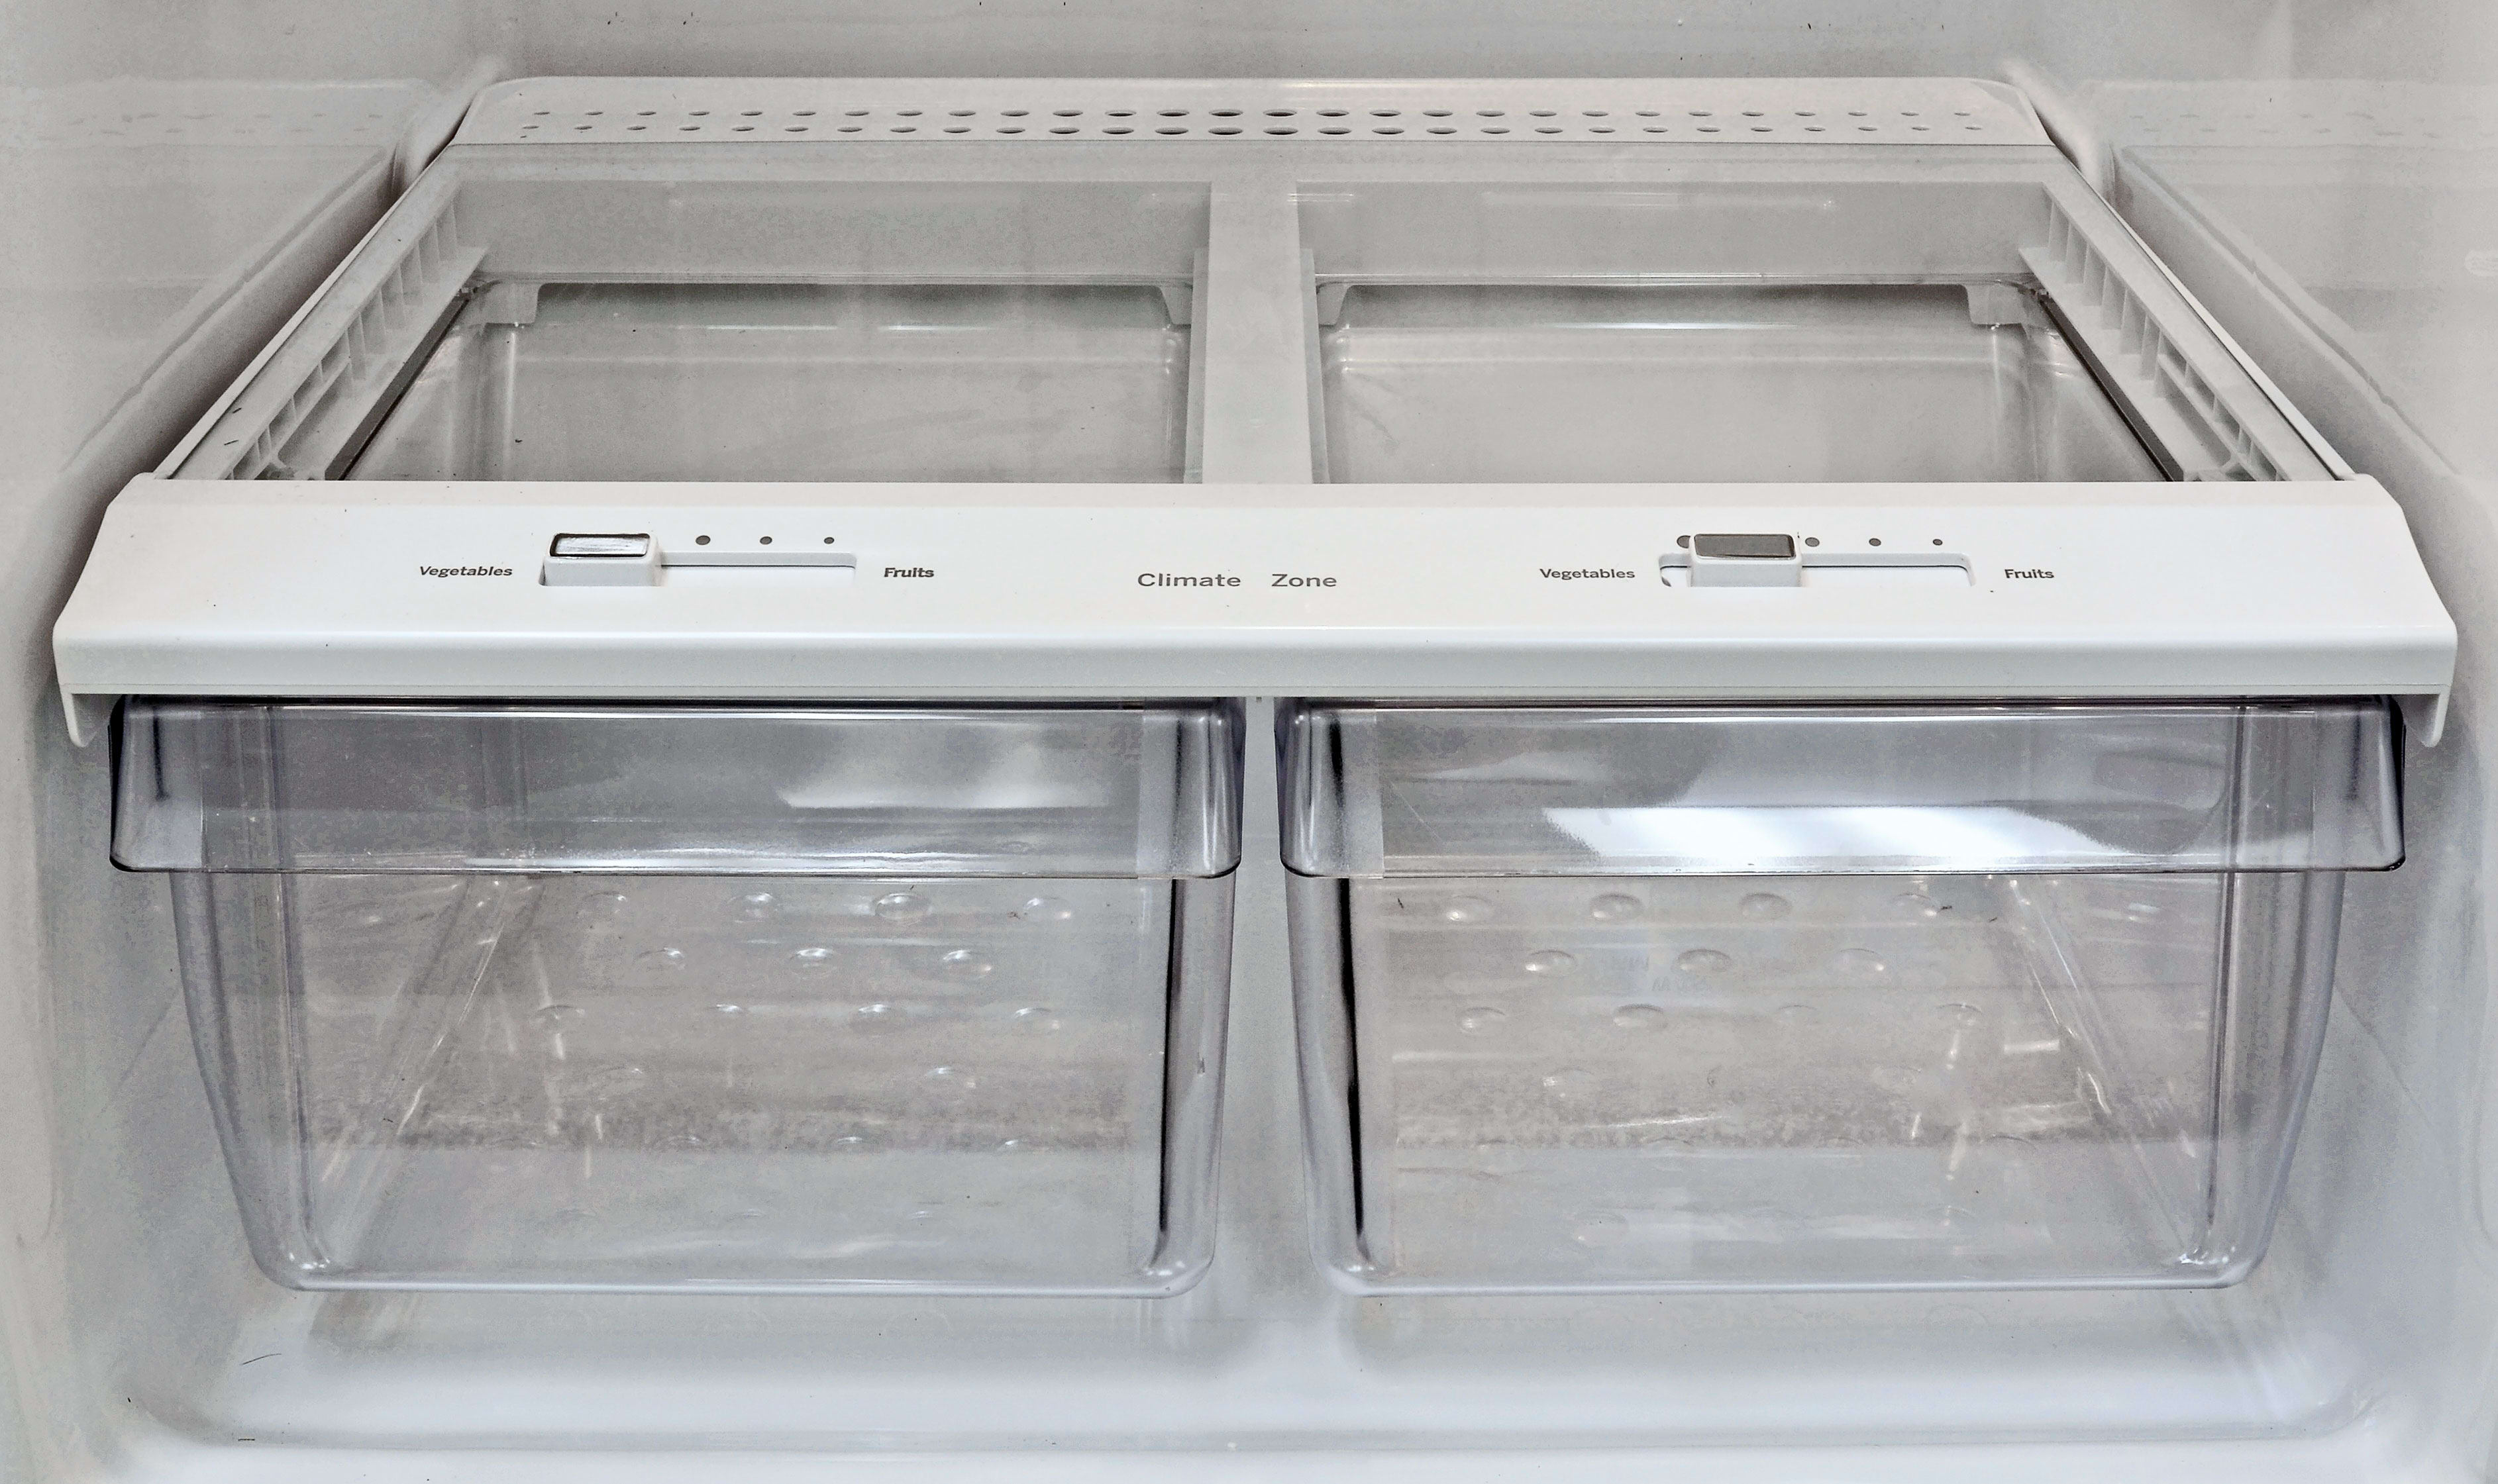 The GE GAS18P's crispers may look low tech, but they did a fine job retaining moisture—especially compared to other fridges in this style and price point.